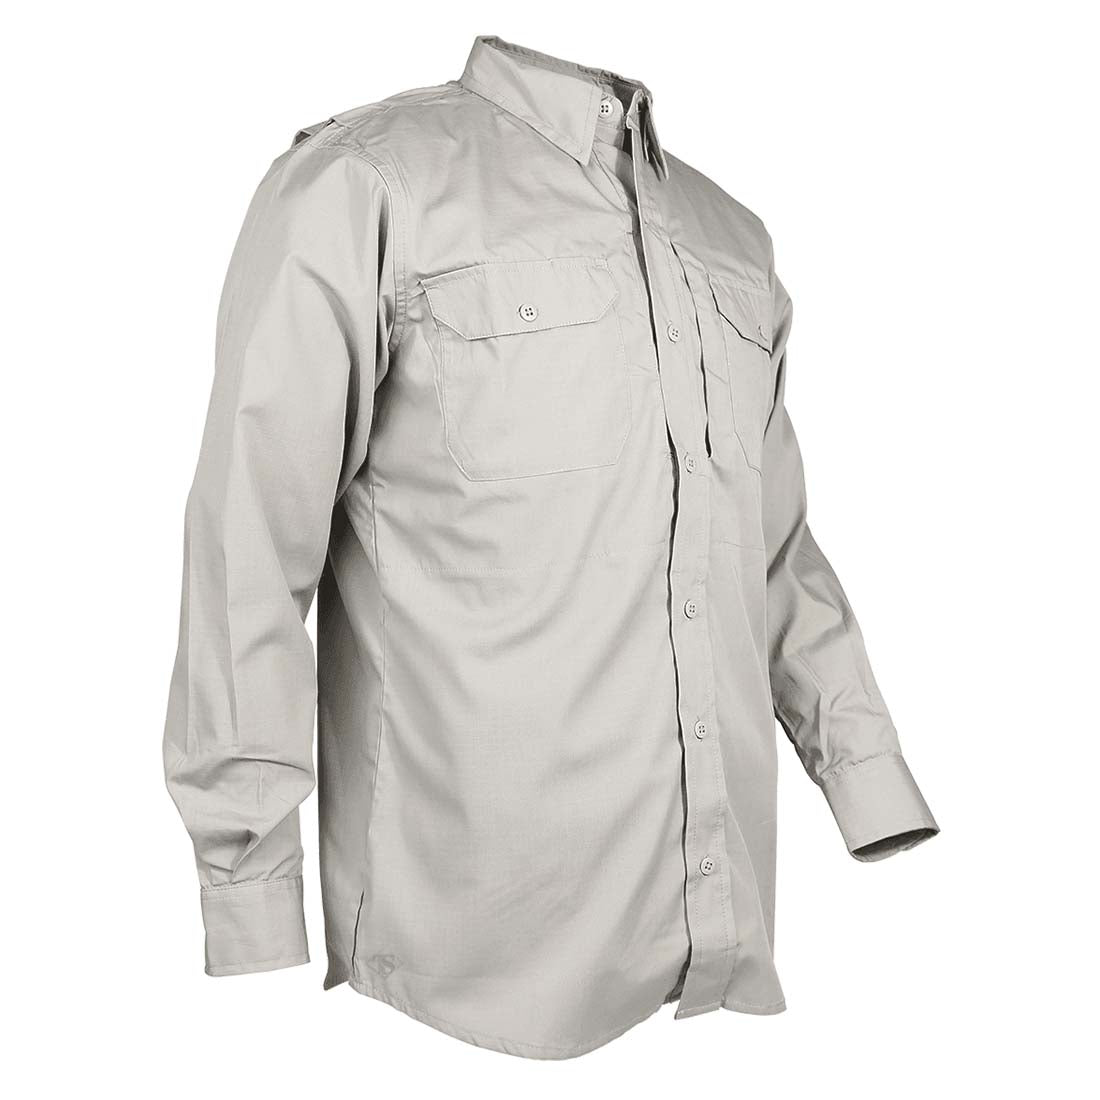 Tru-Spec 1399 Khaki Men's Long Sleeve Dress Shirt